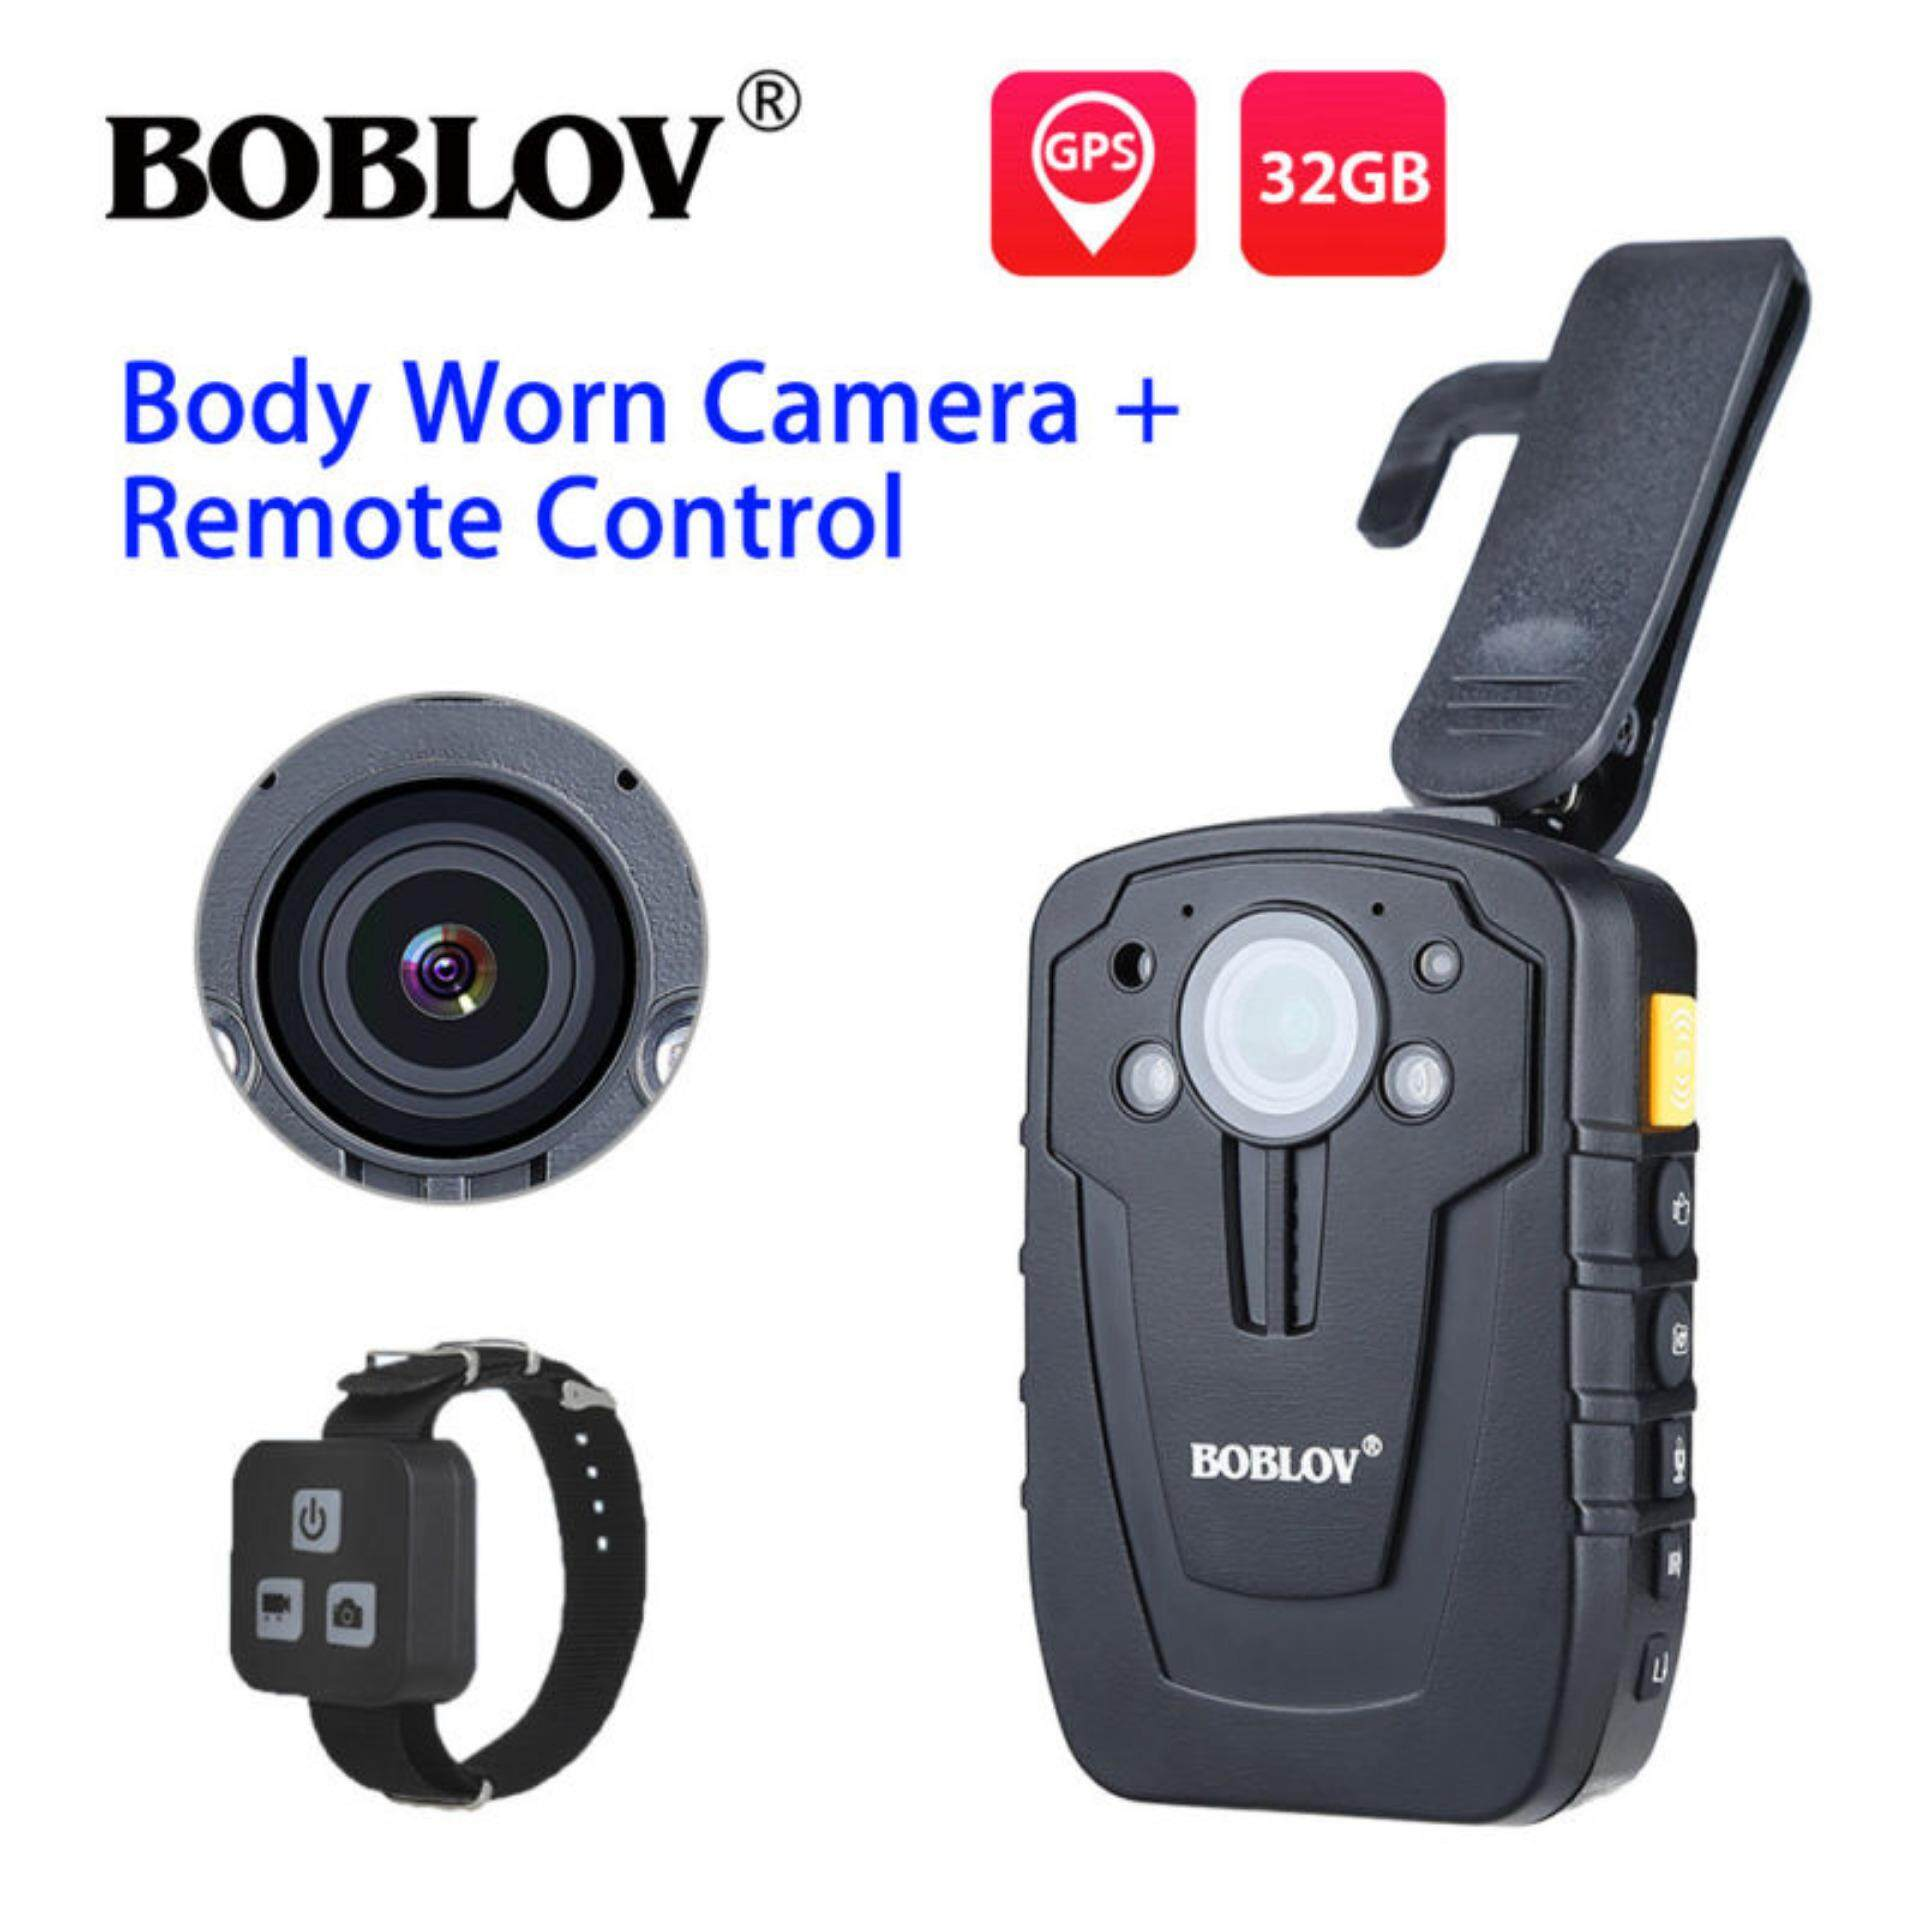 BOBLOV HD 1296P 32GB 2.0″ Night Vision Body Worn Camera Recorder GPS Night Vision Security Camcorder IP66 +Remote Control – intl